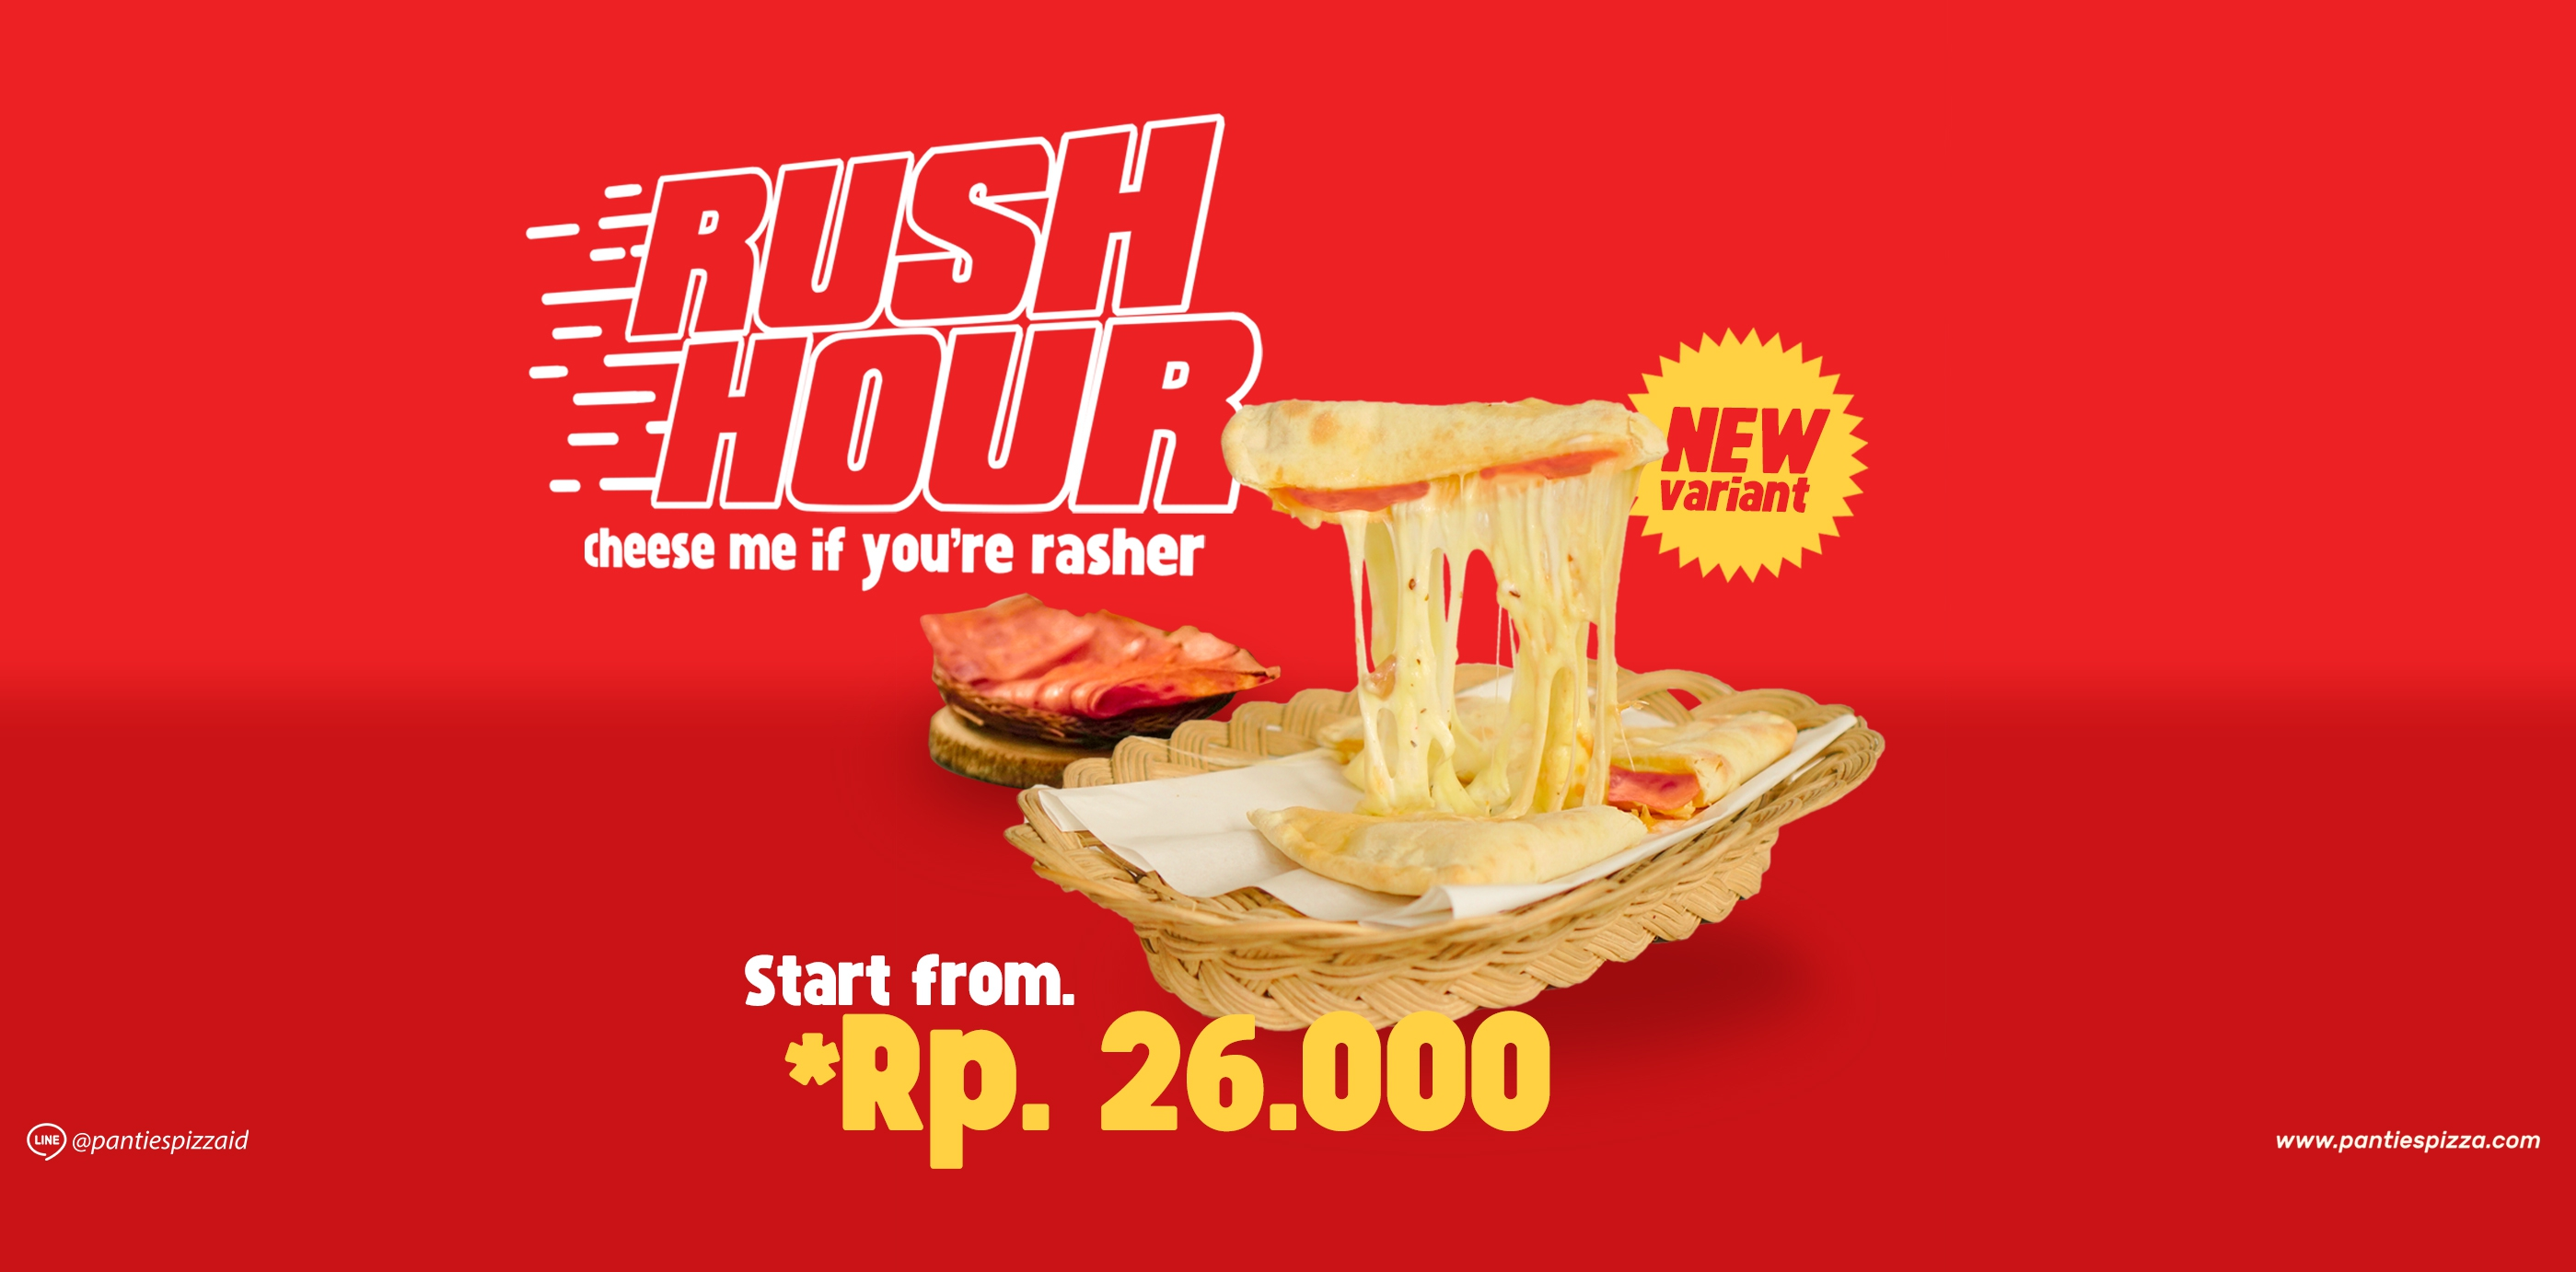 Rush Hour Pizza Panties Pizza Kerja Keras Dengan Waktu Terbatas RUSH HOUR PIZZA Varian Baru Panties Pizza Menu Baru Mobile News Pizza Single Slide